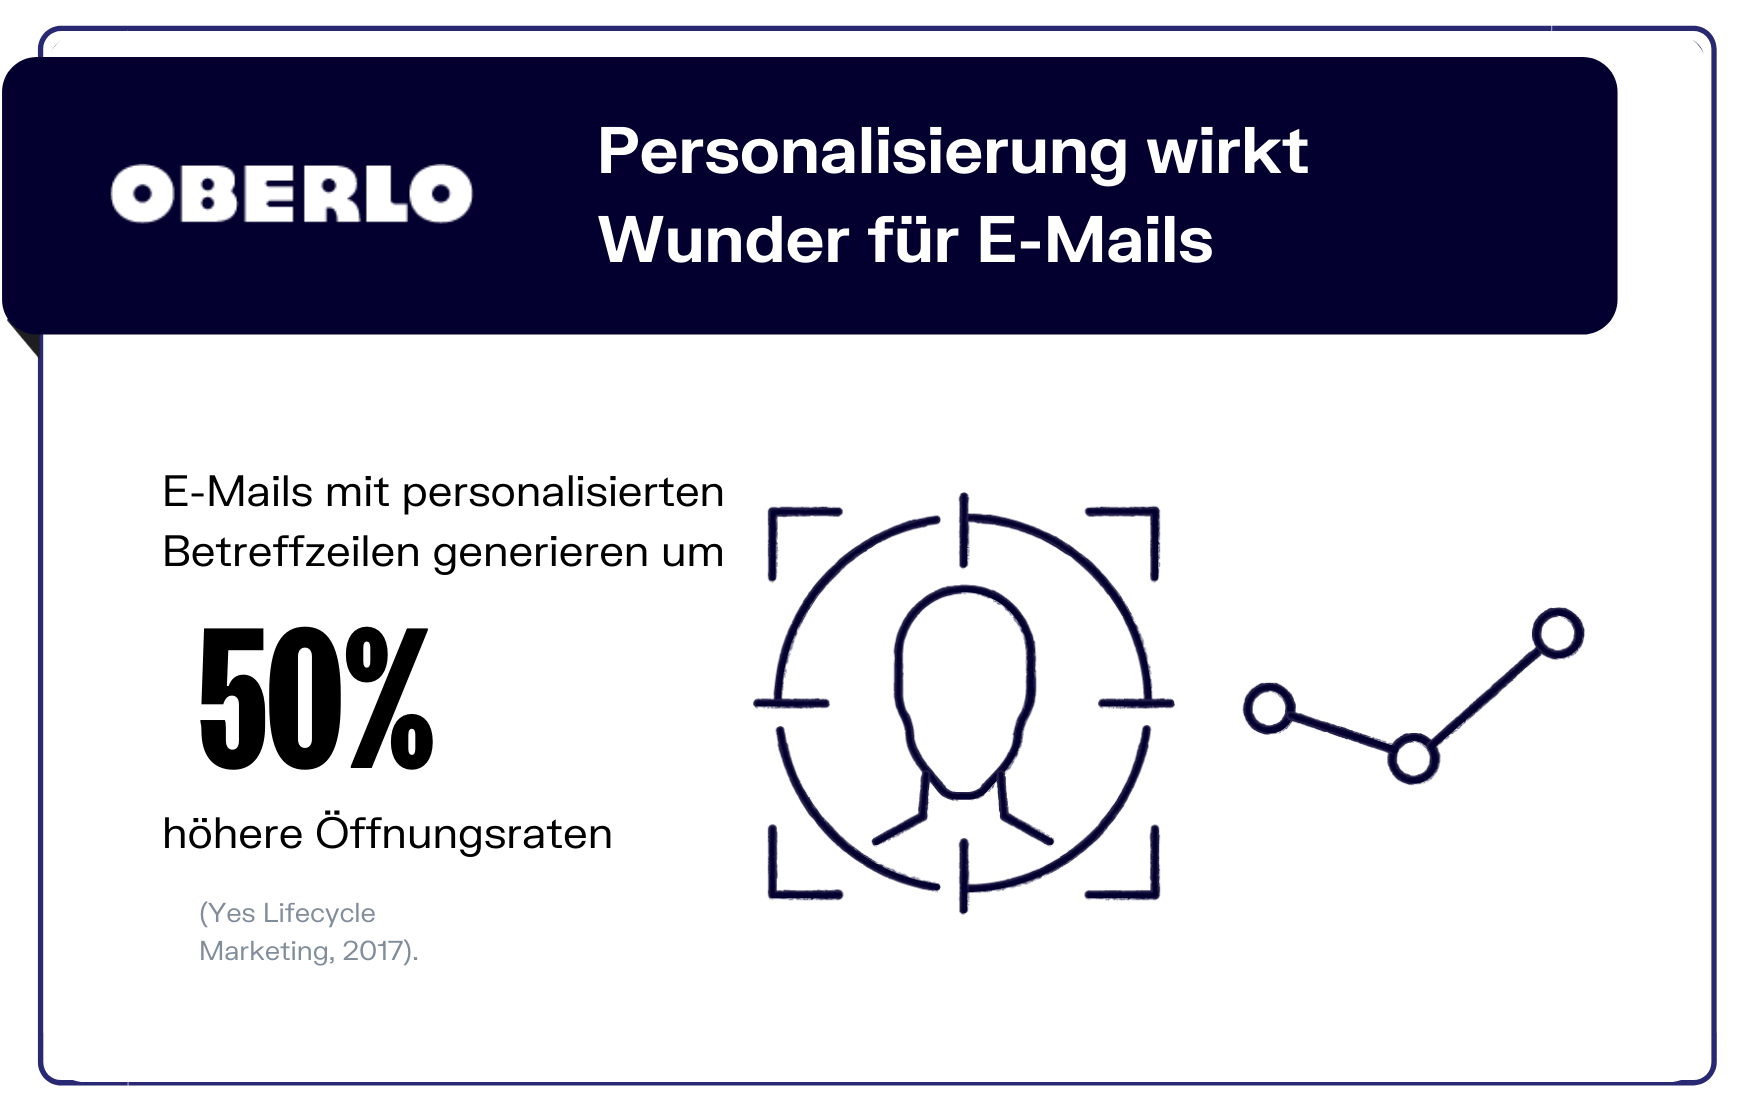 E-Mail-Marketing Statistik Personalisierung